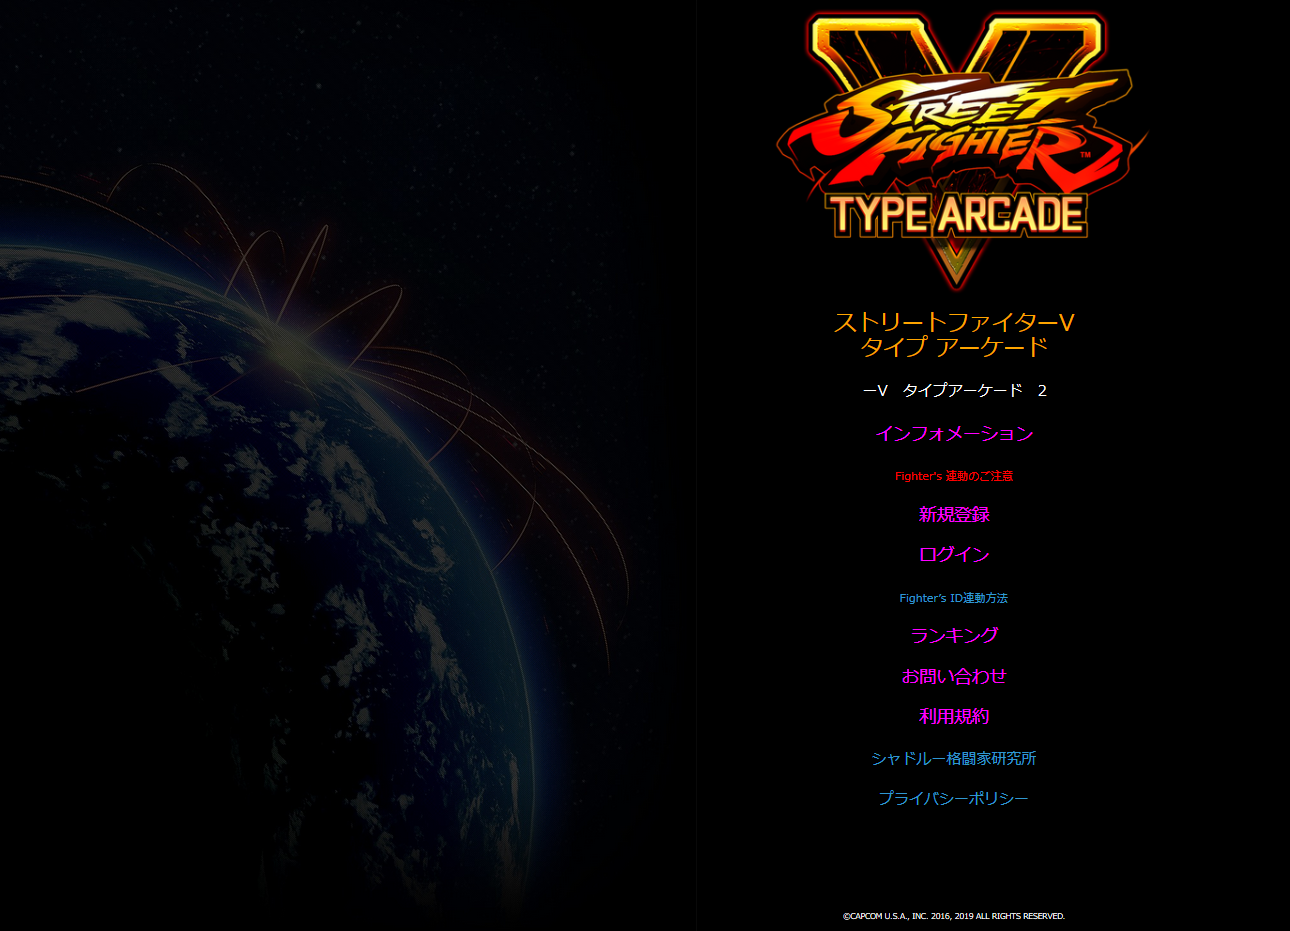 Street Fighter 5: Type Arcade launch 6 out of 6 image gallery